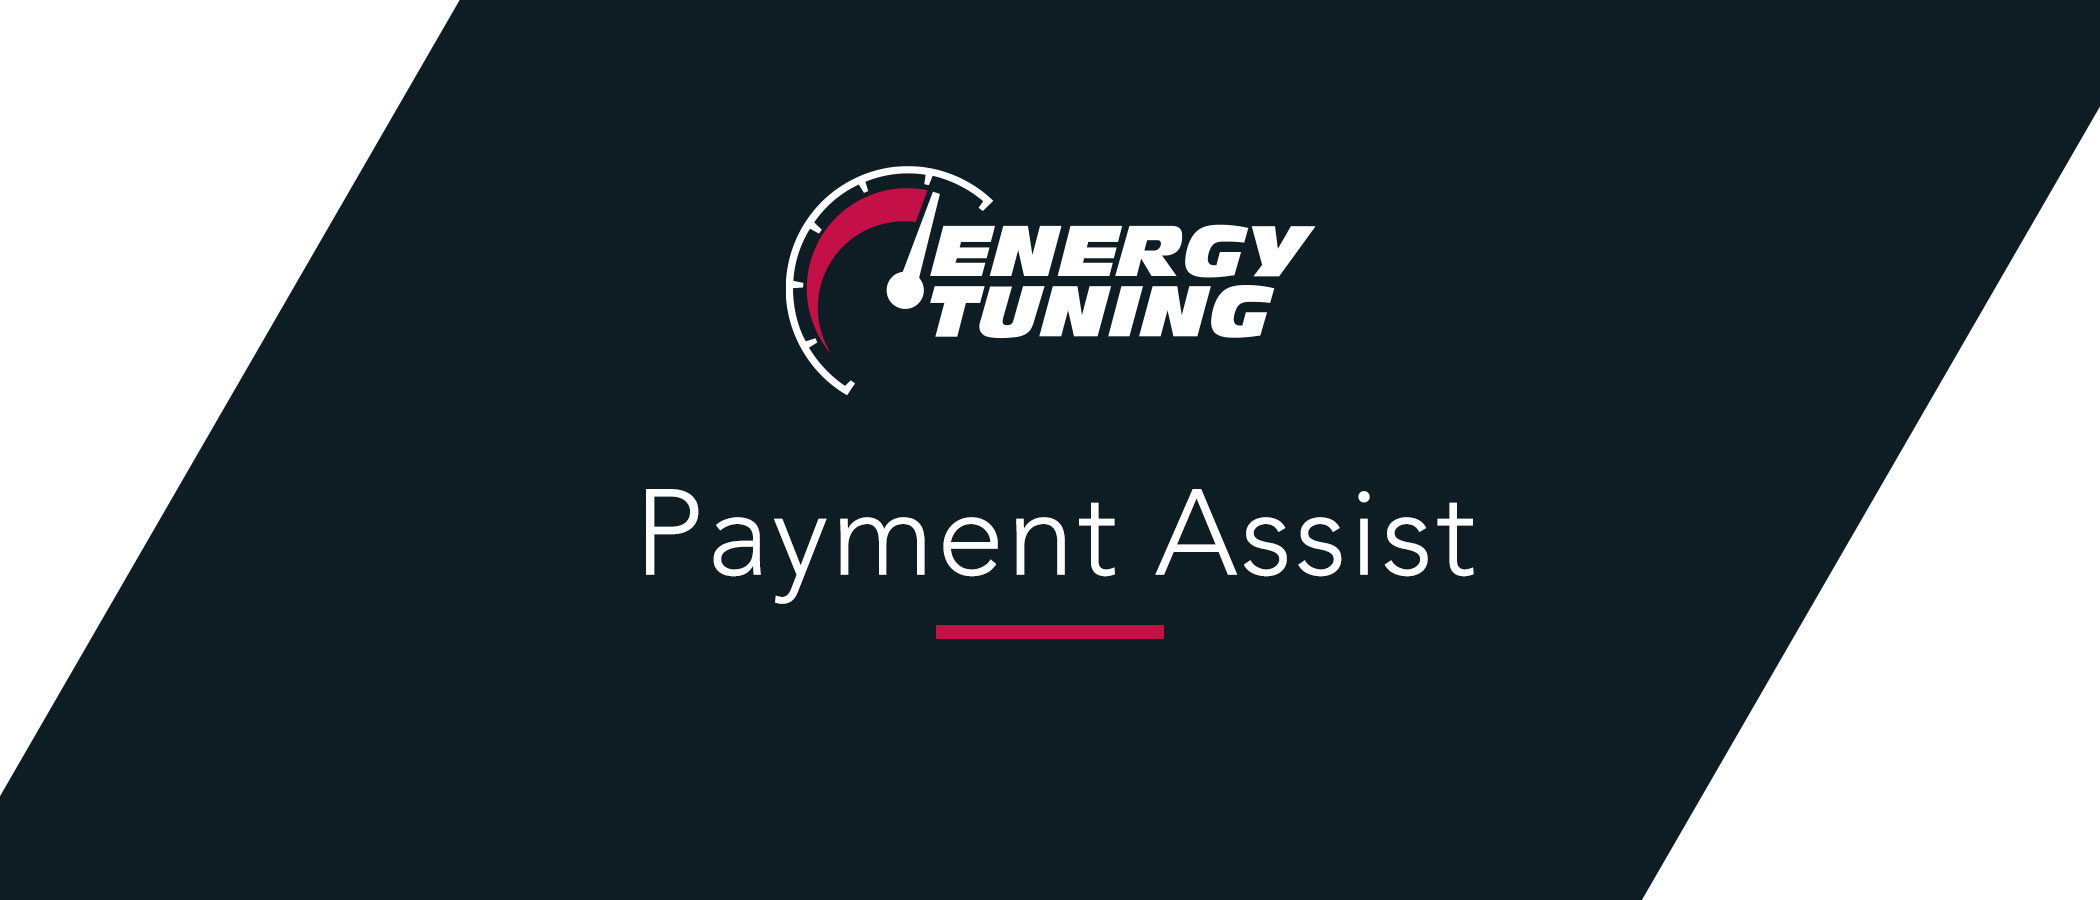 Payment Assist Energy Tuning